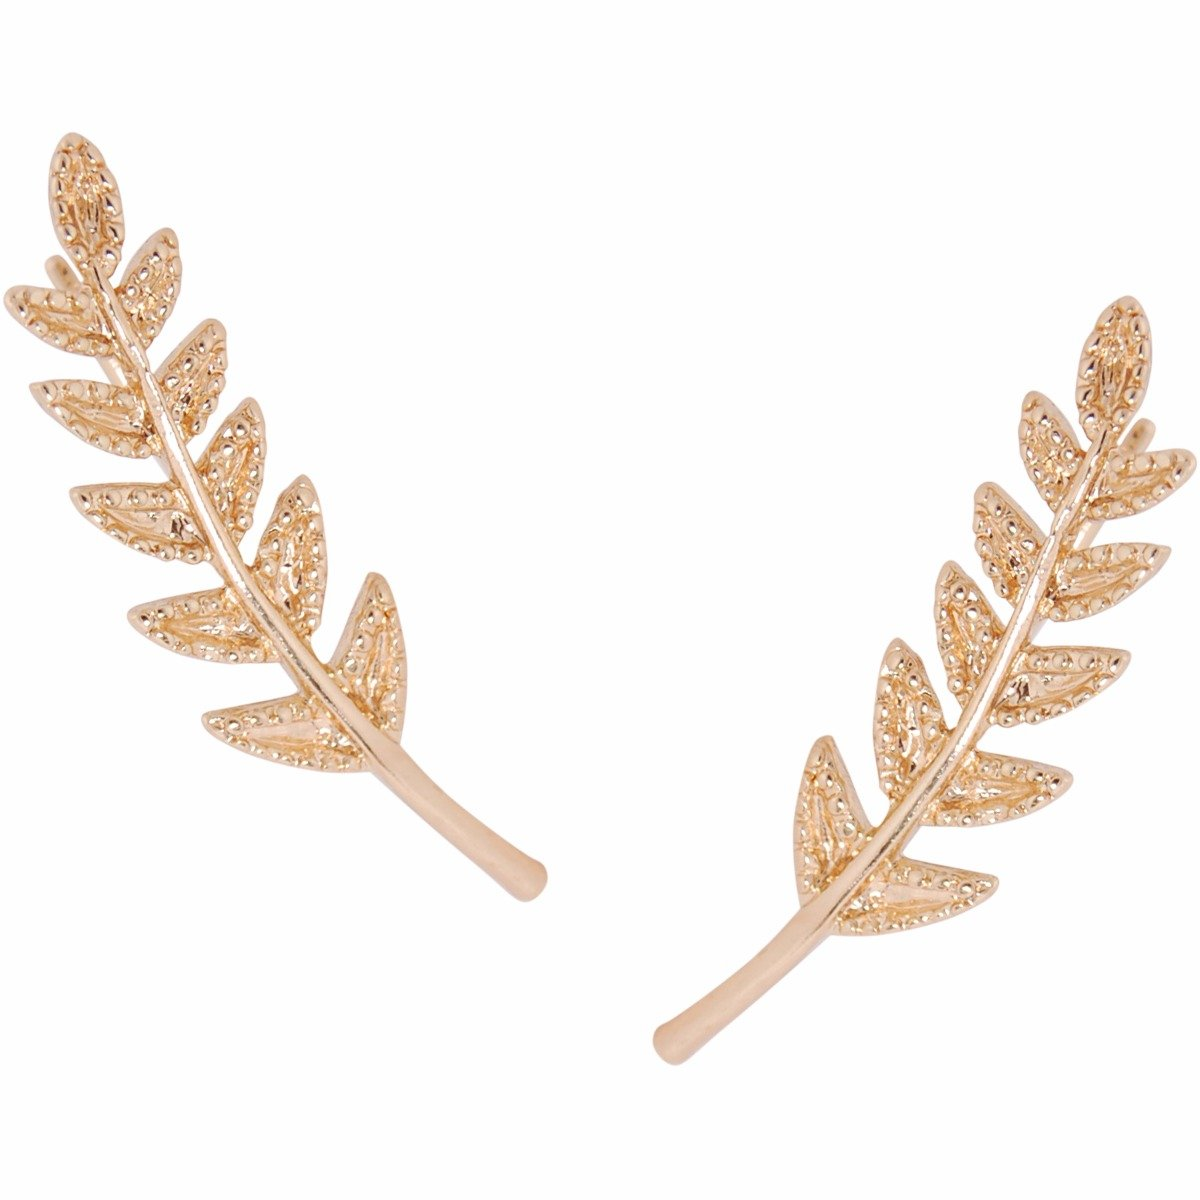 Humble Chic Tiny Leaf Ear Climbers - Delicate Crawler Cuff Stud Jacket Earrings, Gold-Tone by Humble Chic NY